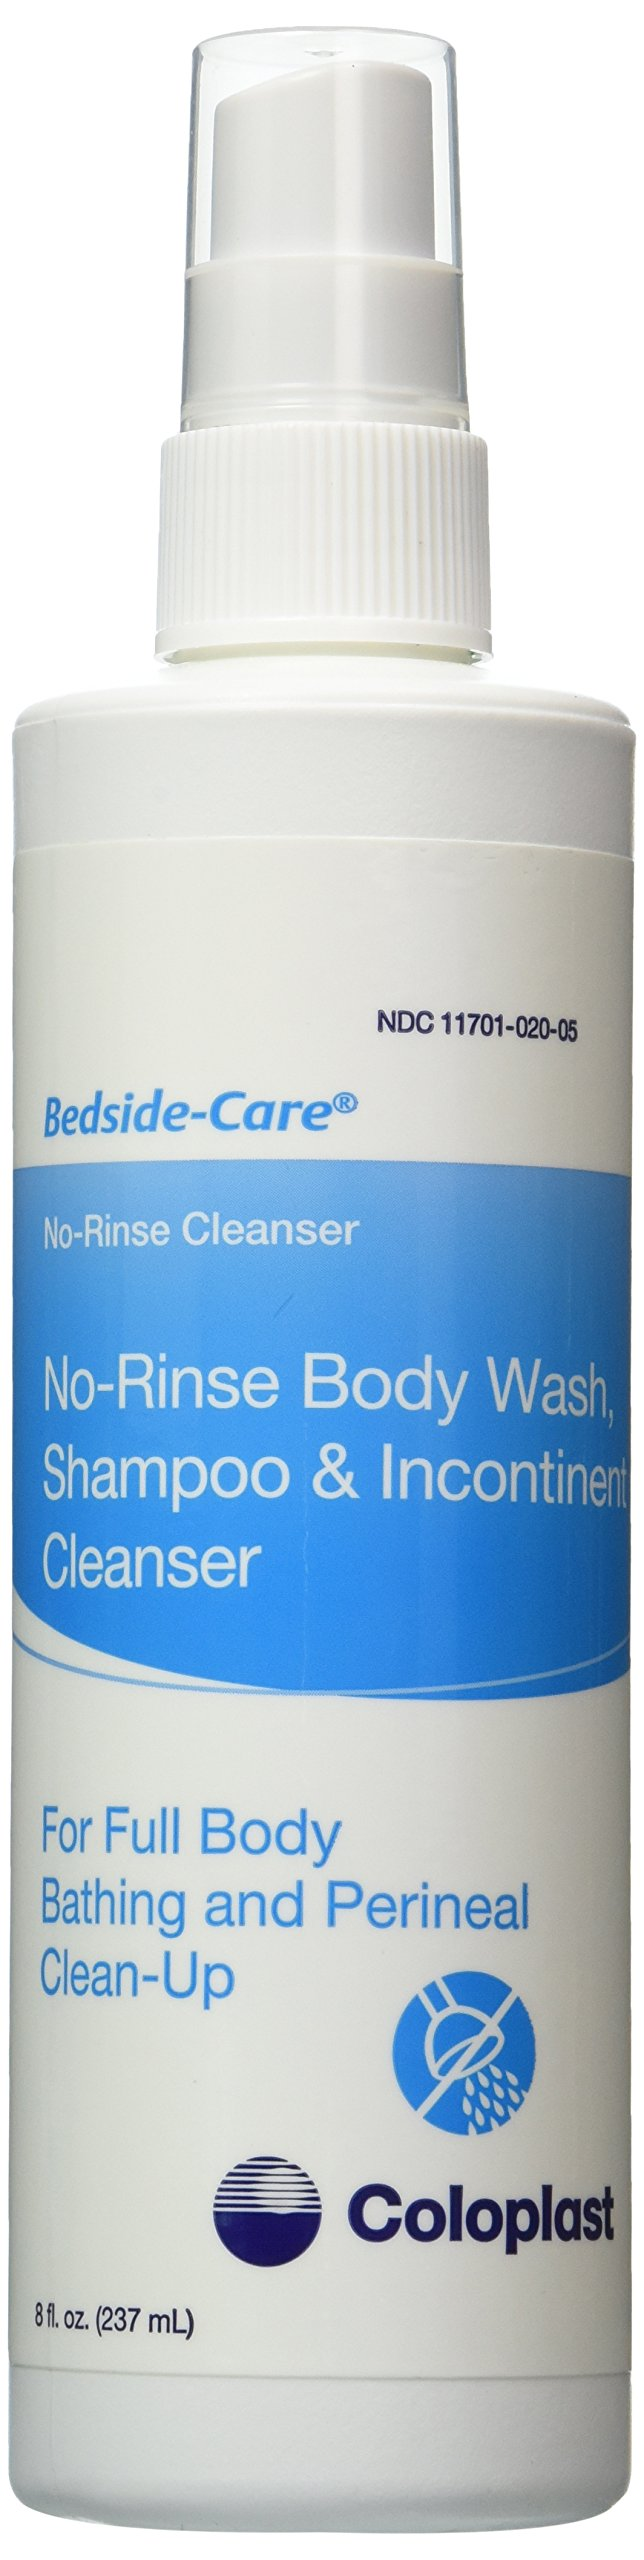 Special Sale - 1 Pack Of 5 - Bedside-Care No-Rinse All-Body Wash and Incontinent Cleanser COL1762 Coloplast Corporation, 8.fl oz Spray